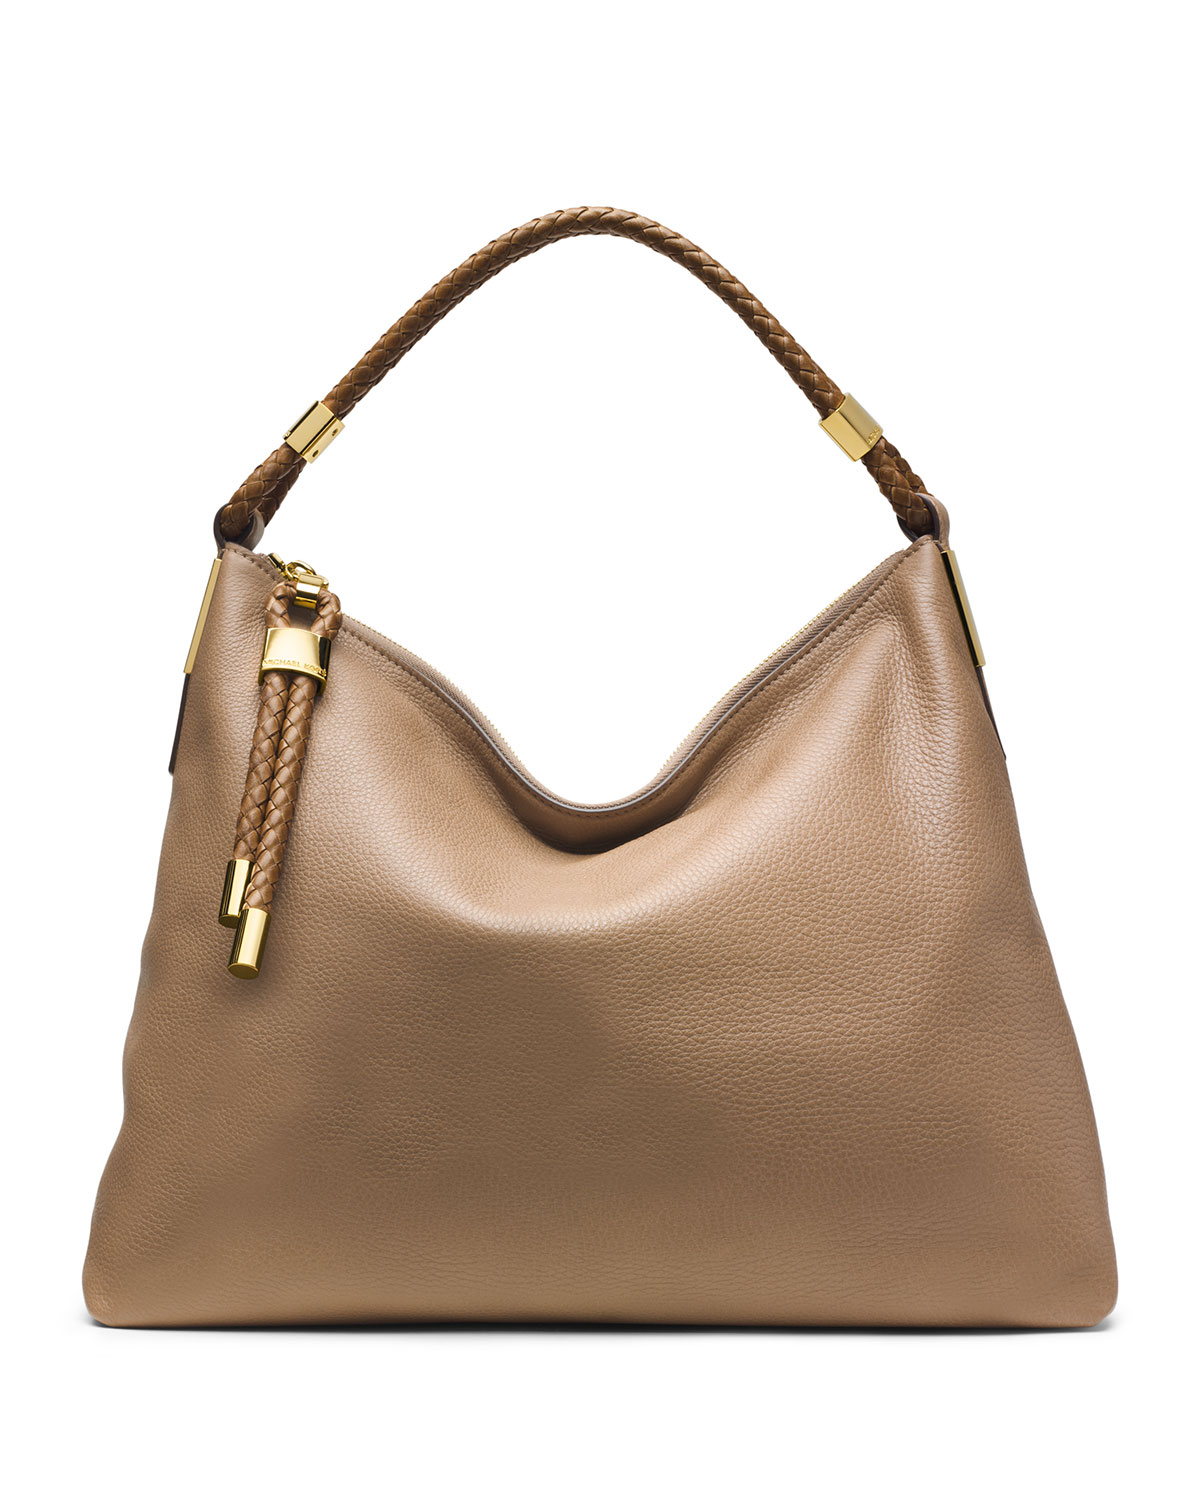 michael kors skorpios topzip hobo bag in brown desert lyst